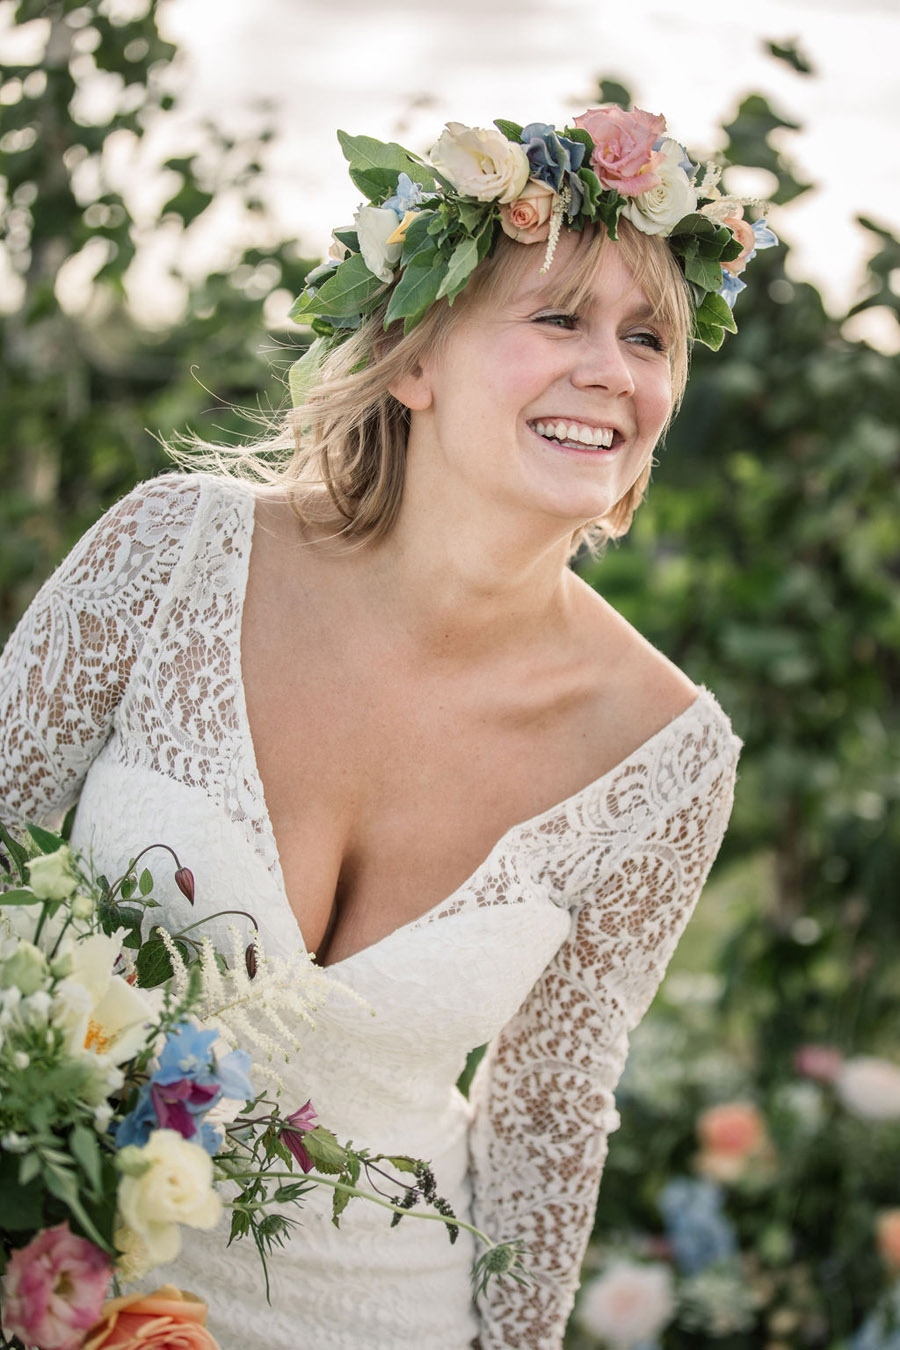 Evening sunset wedding inspiration at Willow Grange Farm, with Becky Harley Photography (27)